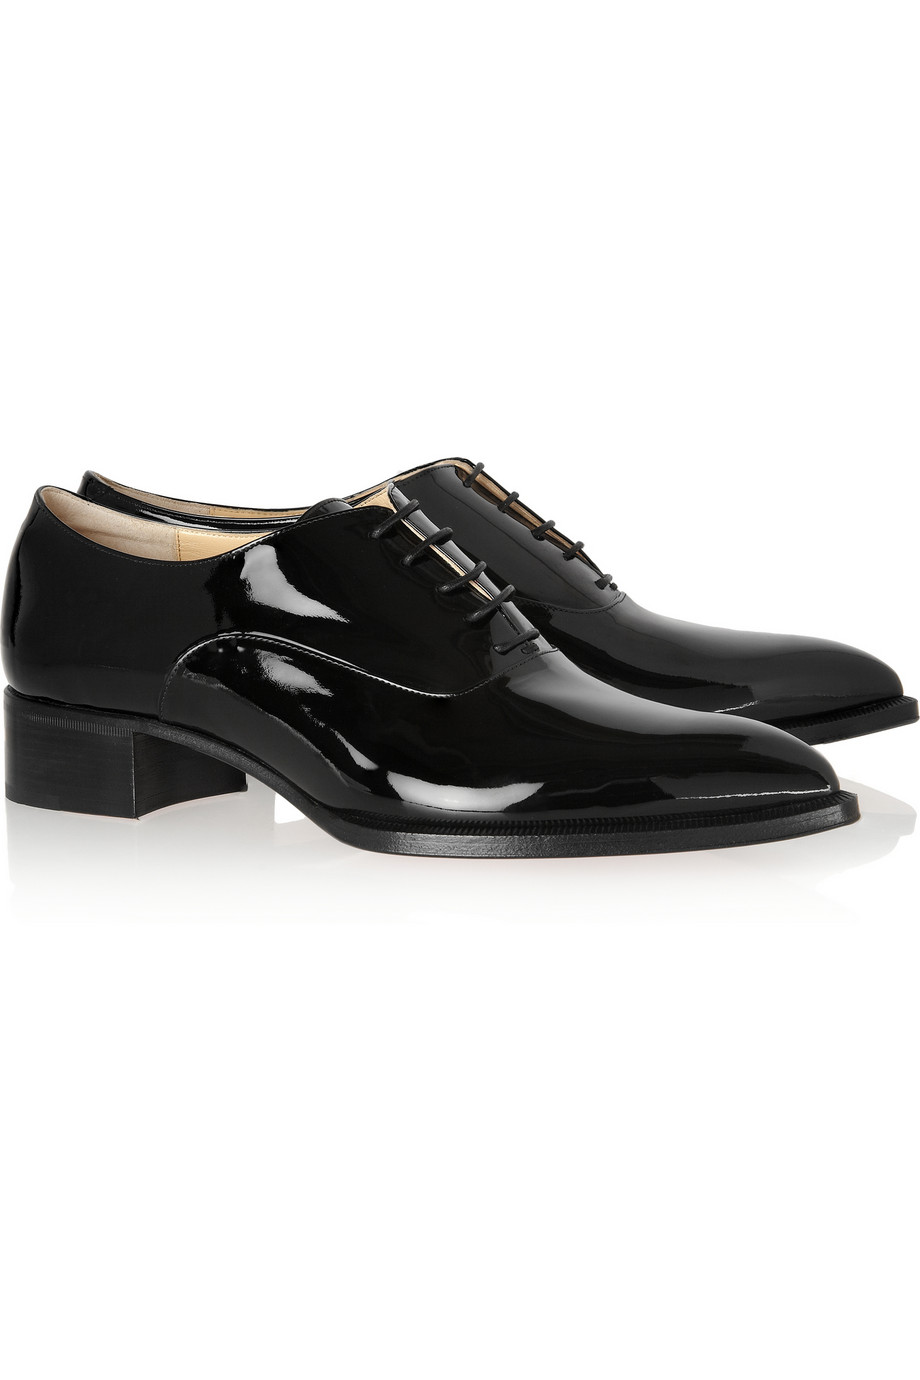 Christian Louboutin Zazou Patentleather Brogues In Black